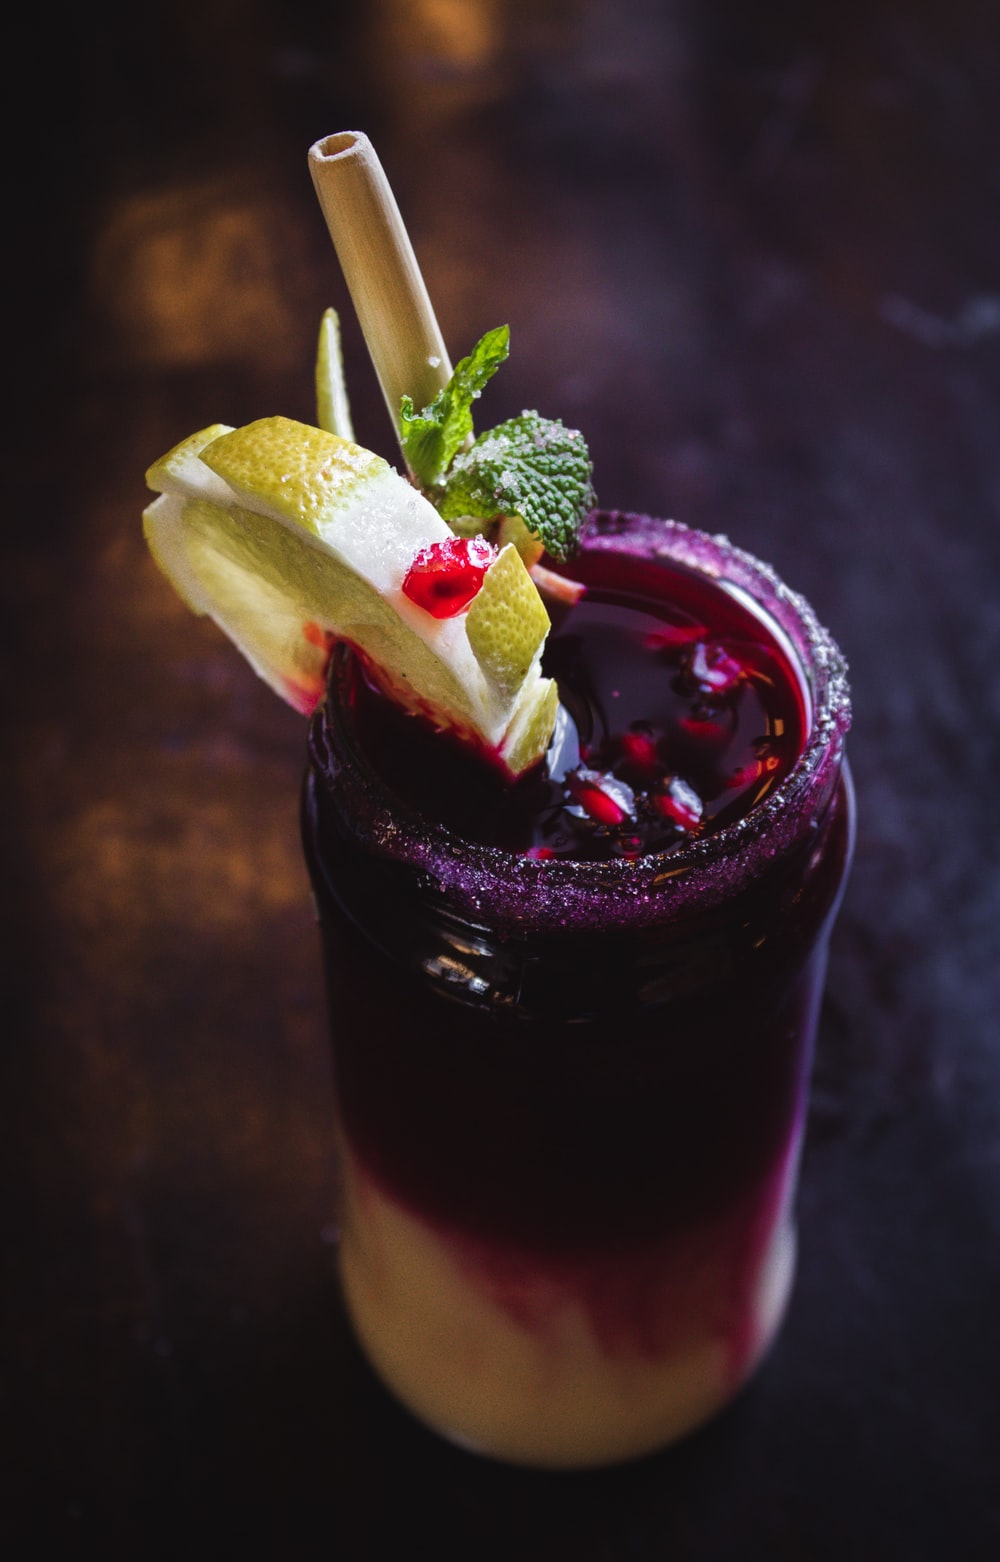 purple drink with straw and lemon slice